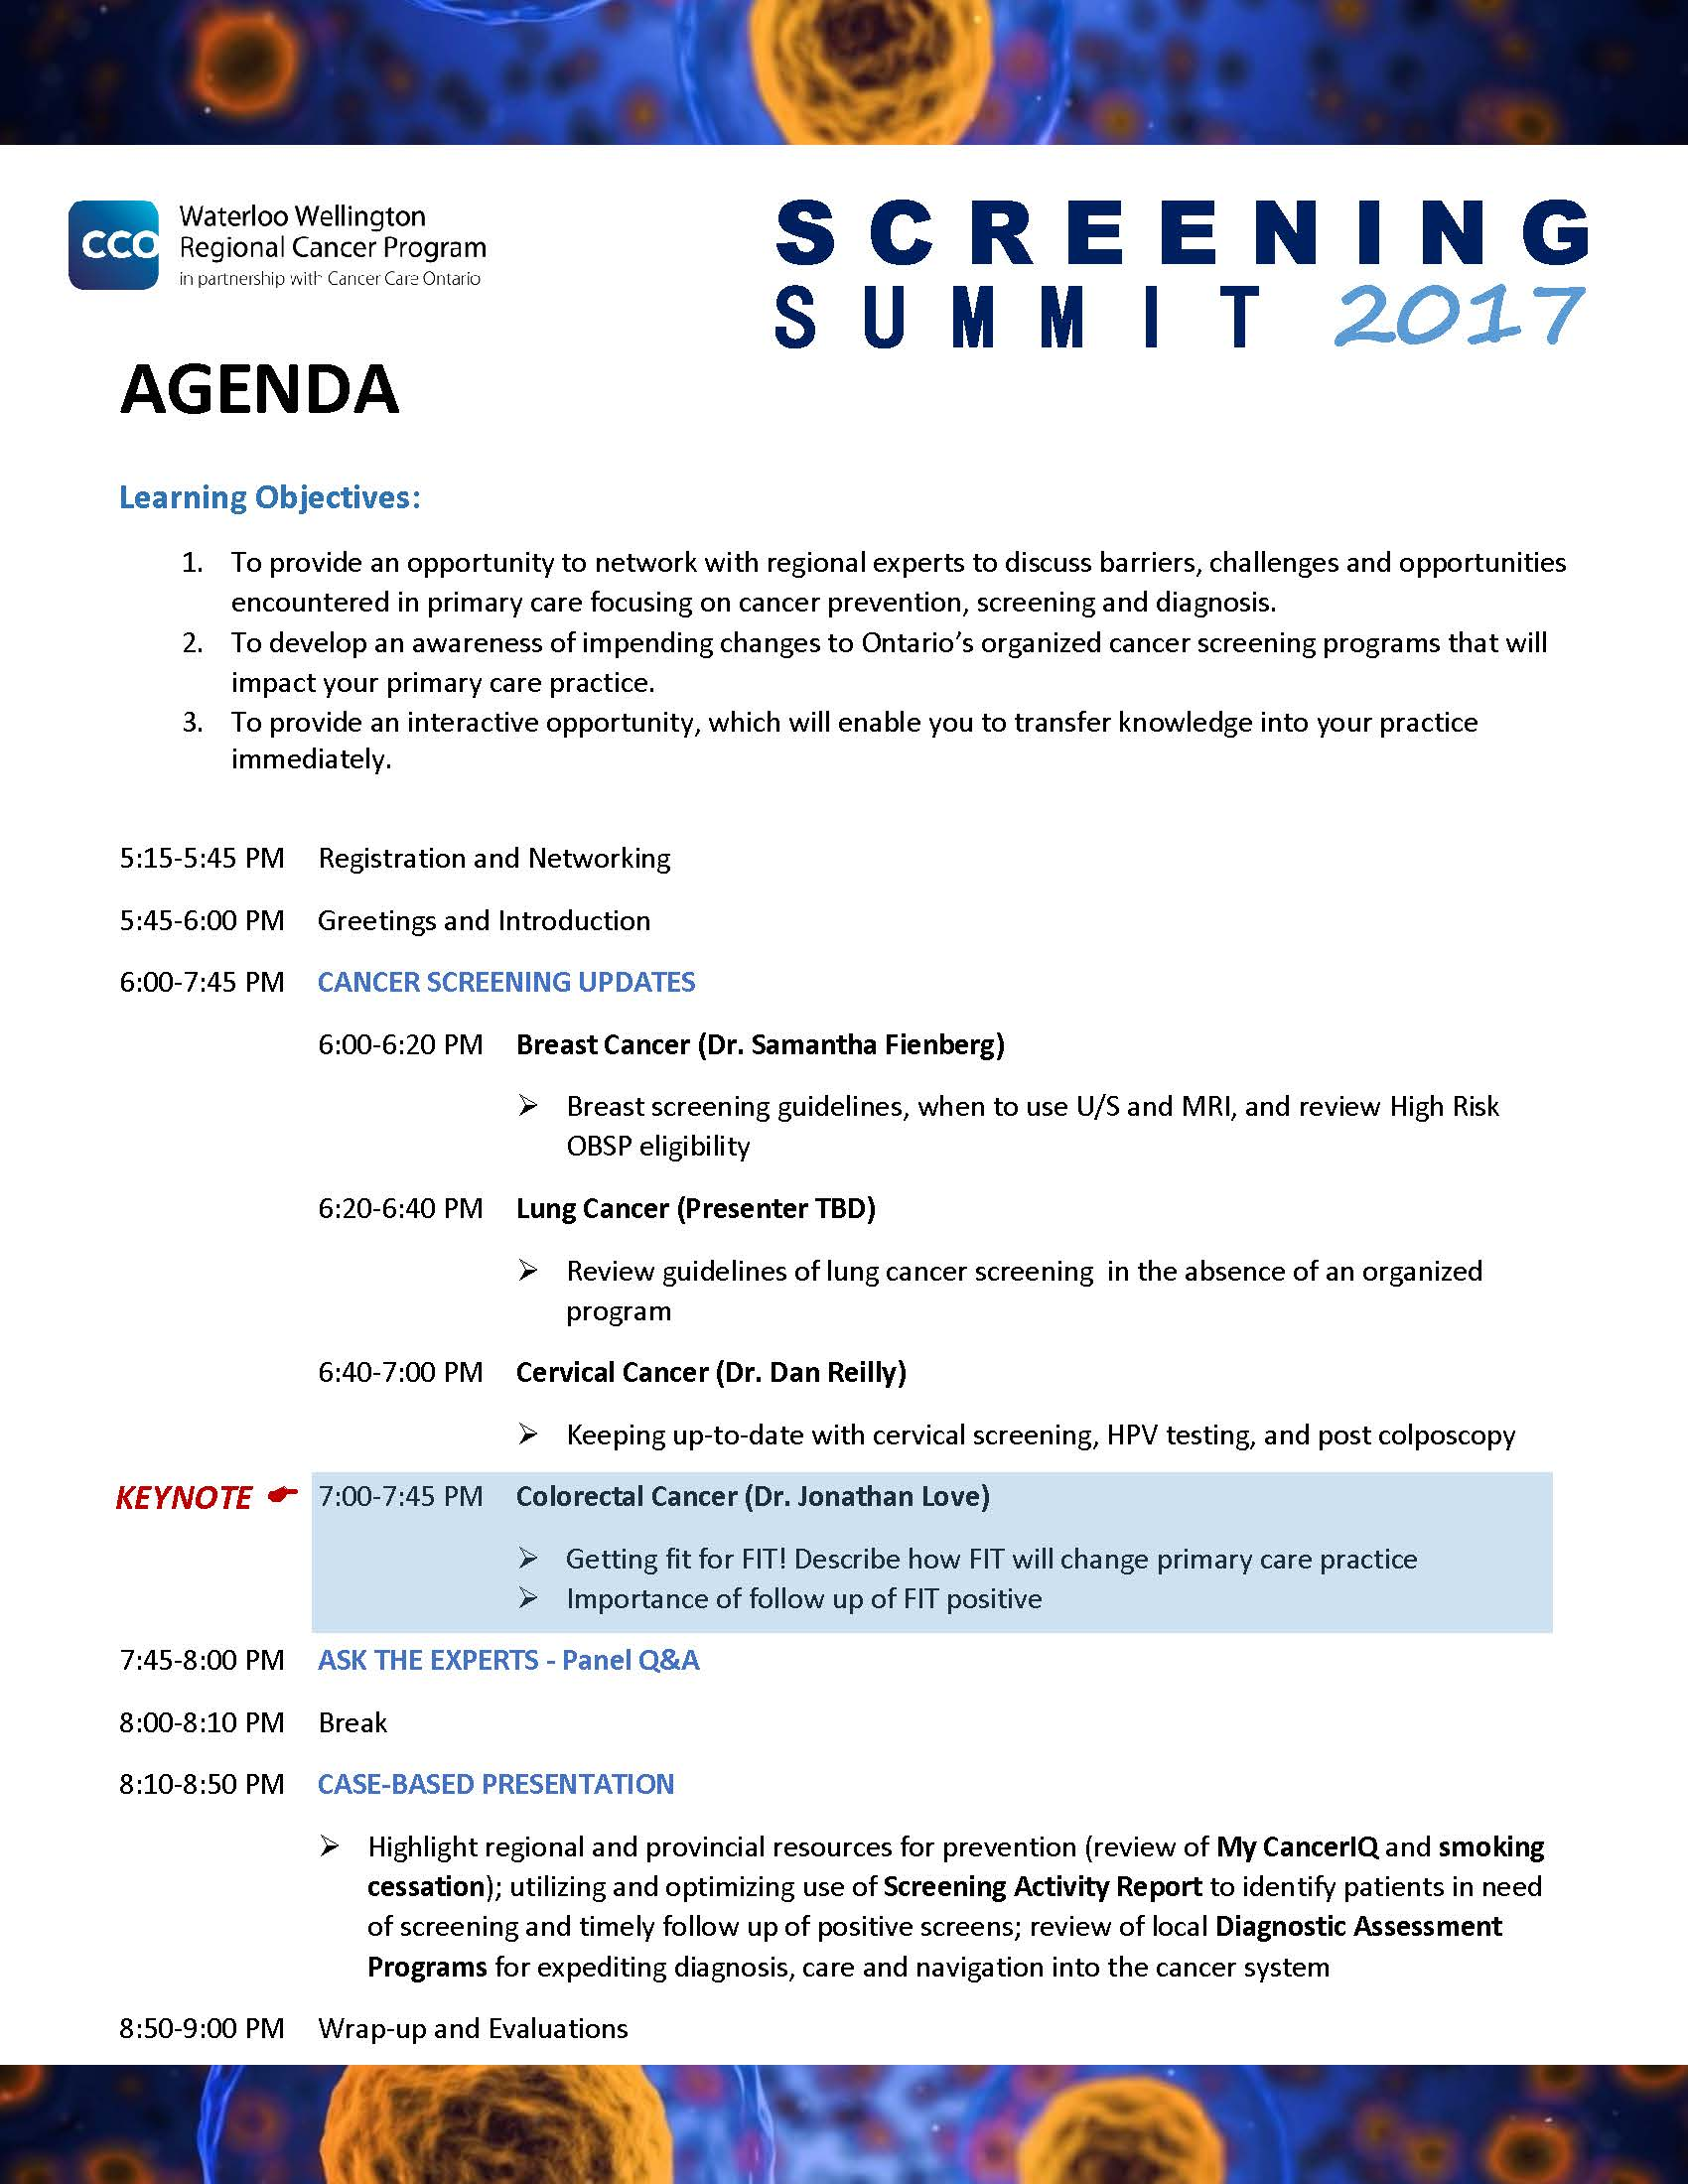 Screening Summit 2017 Agenda